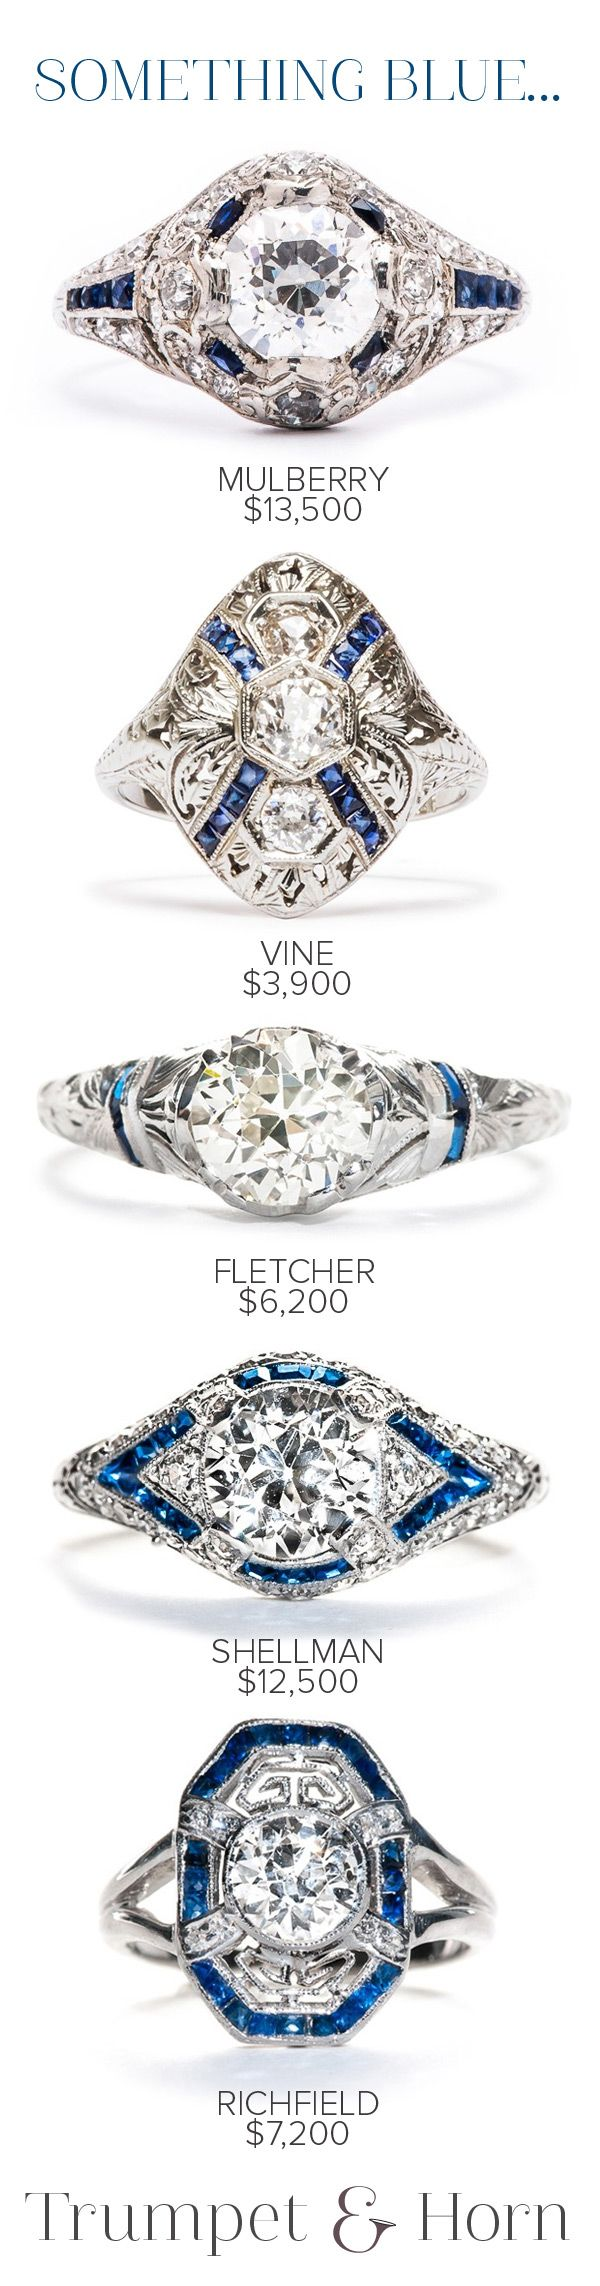 most expensive engagement ring most expensive wedding rings 25 Best Ideas about Most Expensive Engagement Ring on Pinterest Most expensive ring Expensive rings and Expensive engagement rings